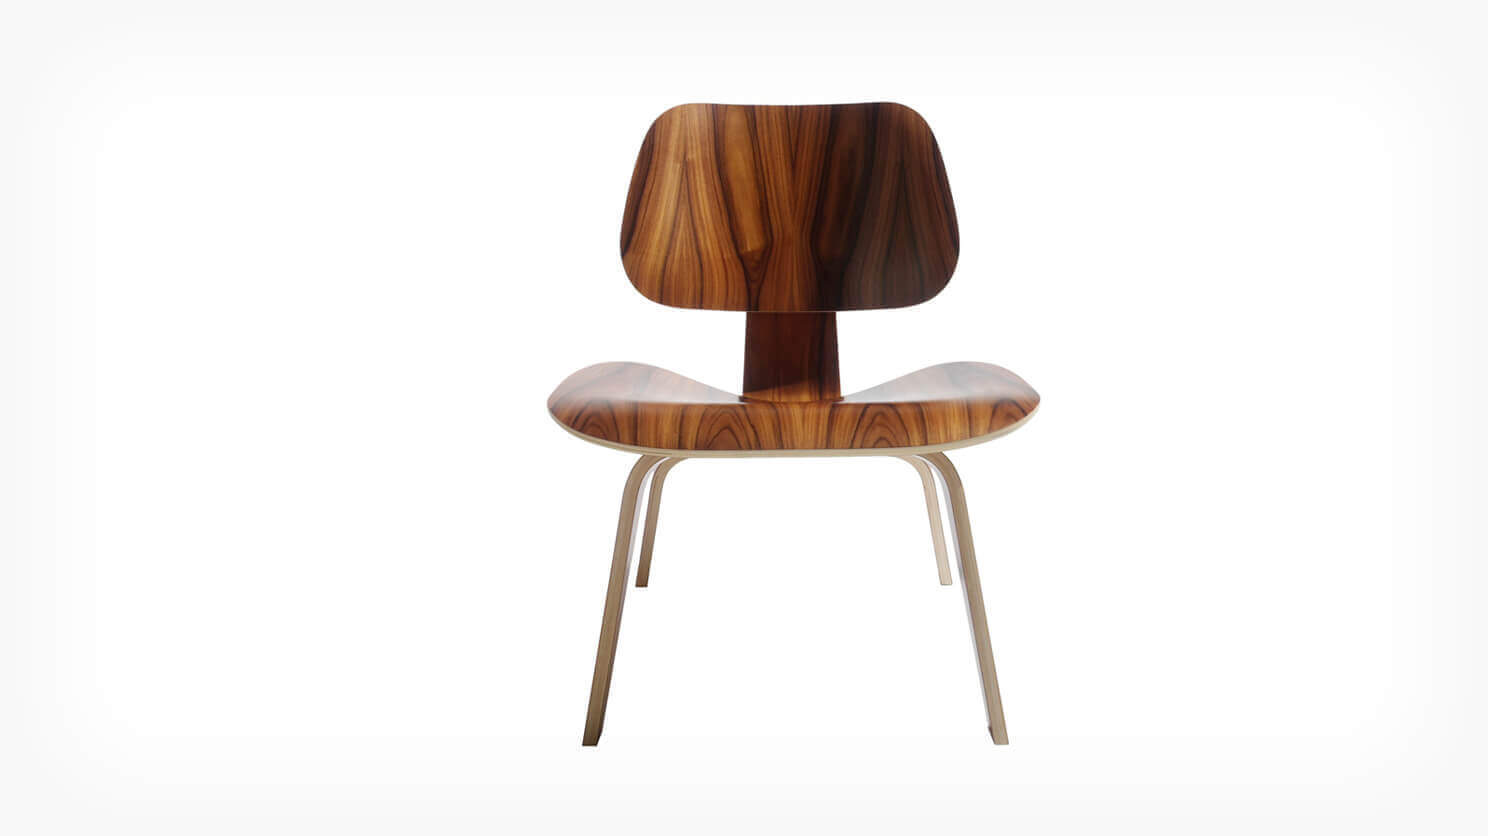 Eames Plywood Chair Eames Molded Plywood Lounge Chair